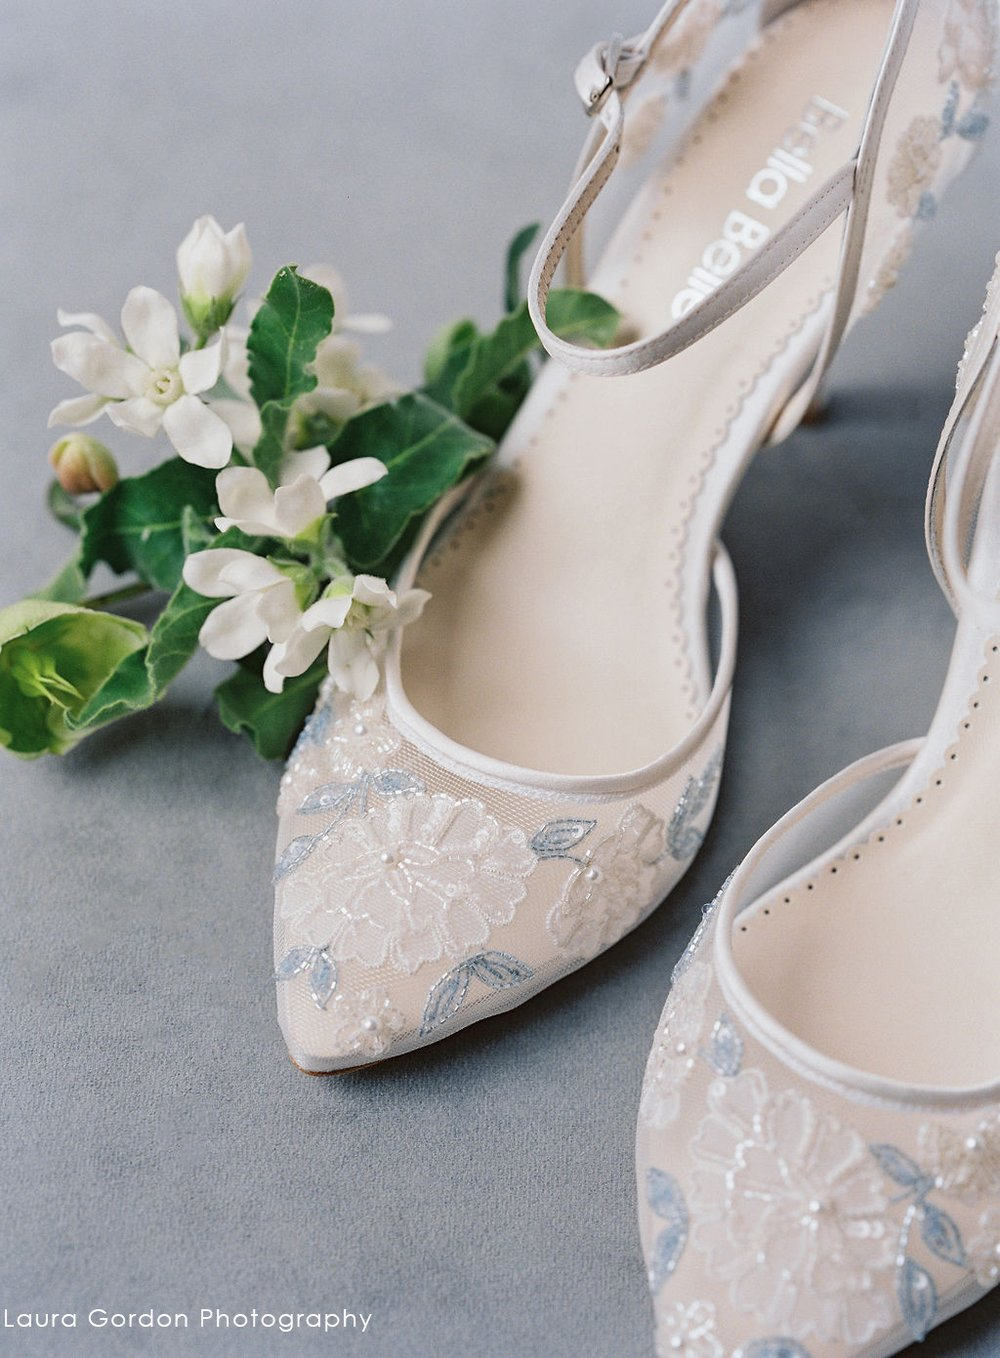 Viola Baby Blue Lace Low Heel Wedding Shoe Wedding Shoes Heels